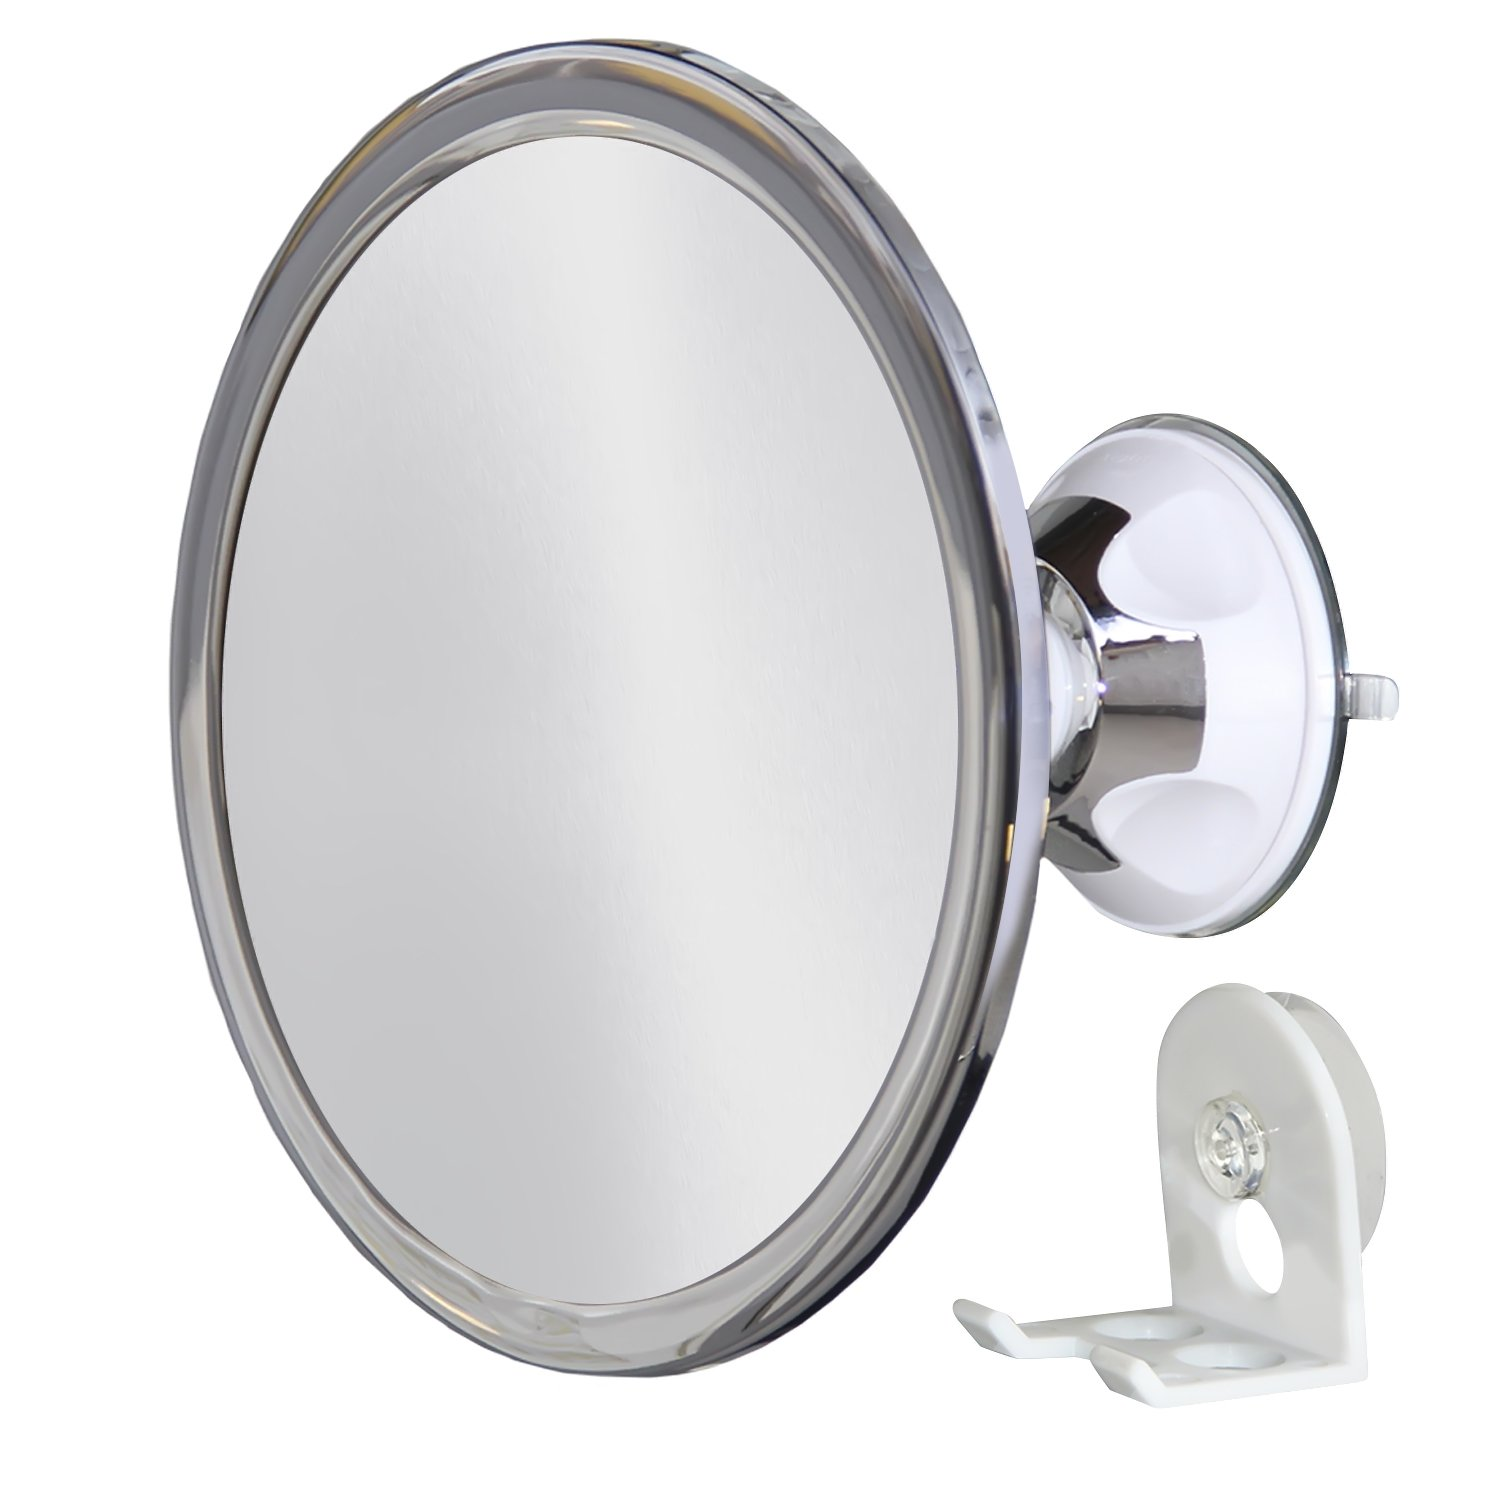 Amazon.com : Upper West Collection No Fog Shower Mirror with ...